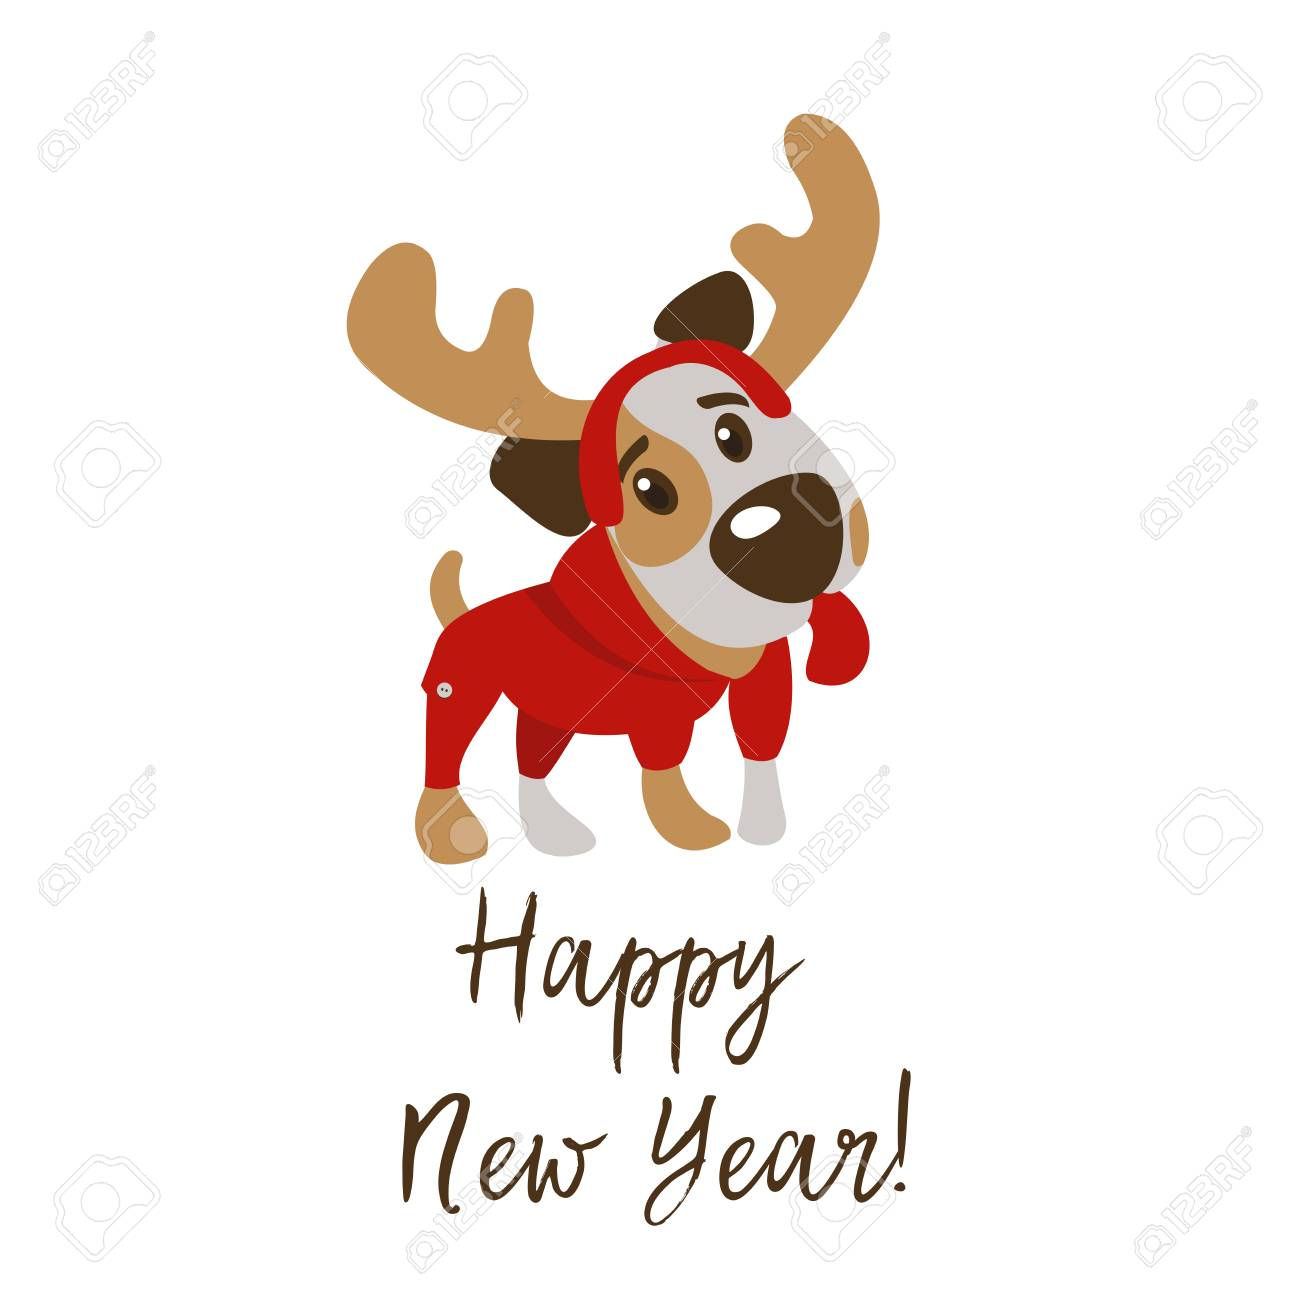 Happy New Year And Merry Christmas Greeting Card With Funny